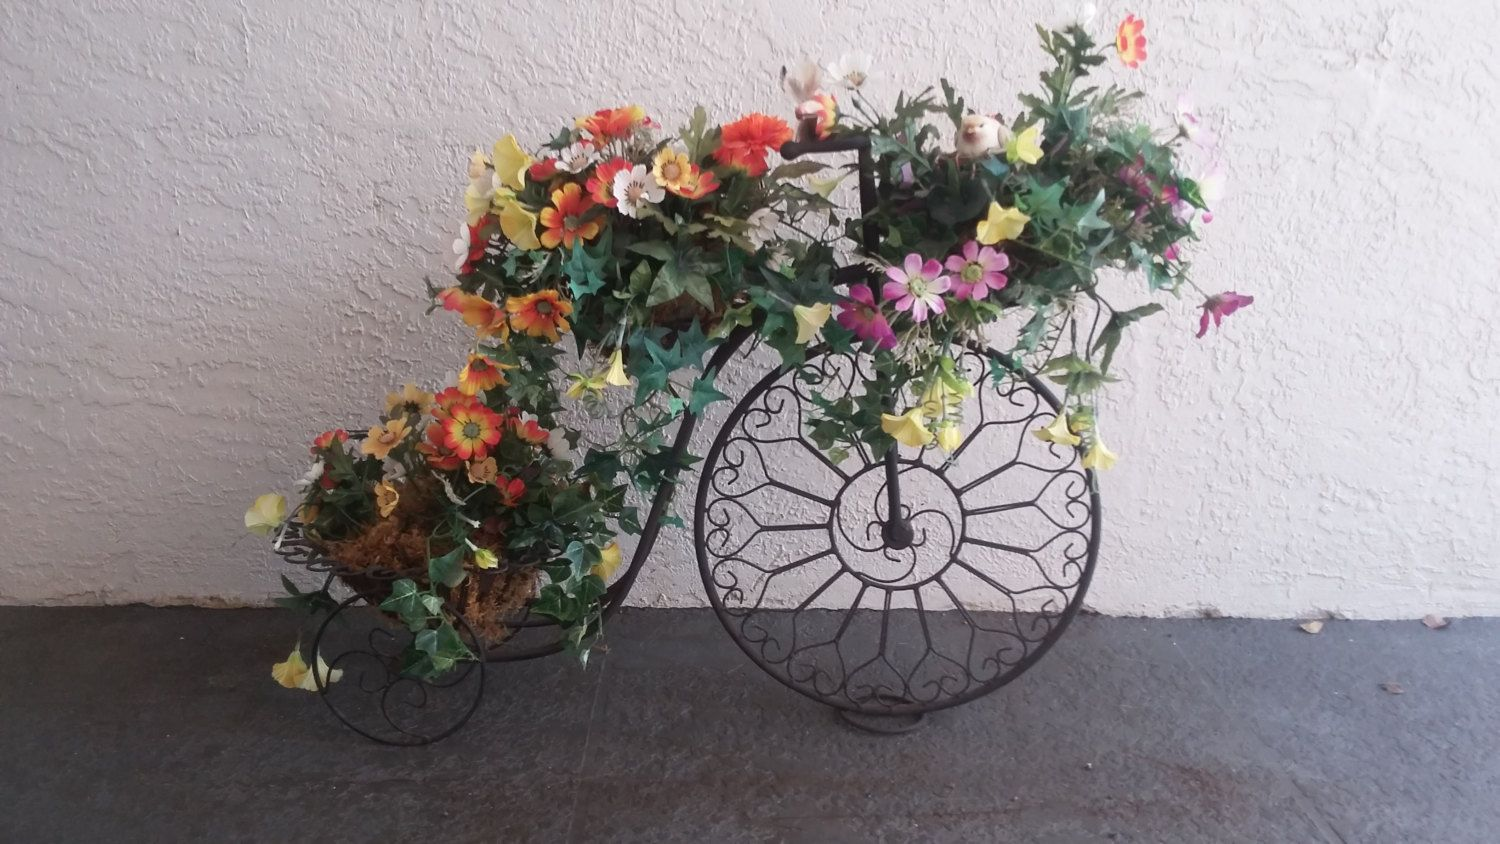 Good Wrought Iron Bike Planter, Planter Garden Ornaments,Silk Flowers, Bikes, Gardenu2026